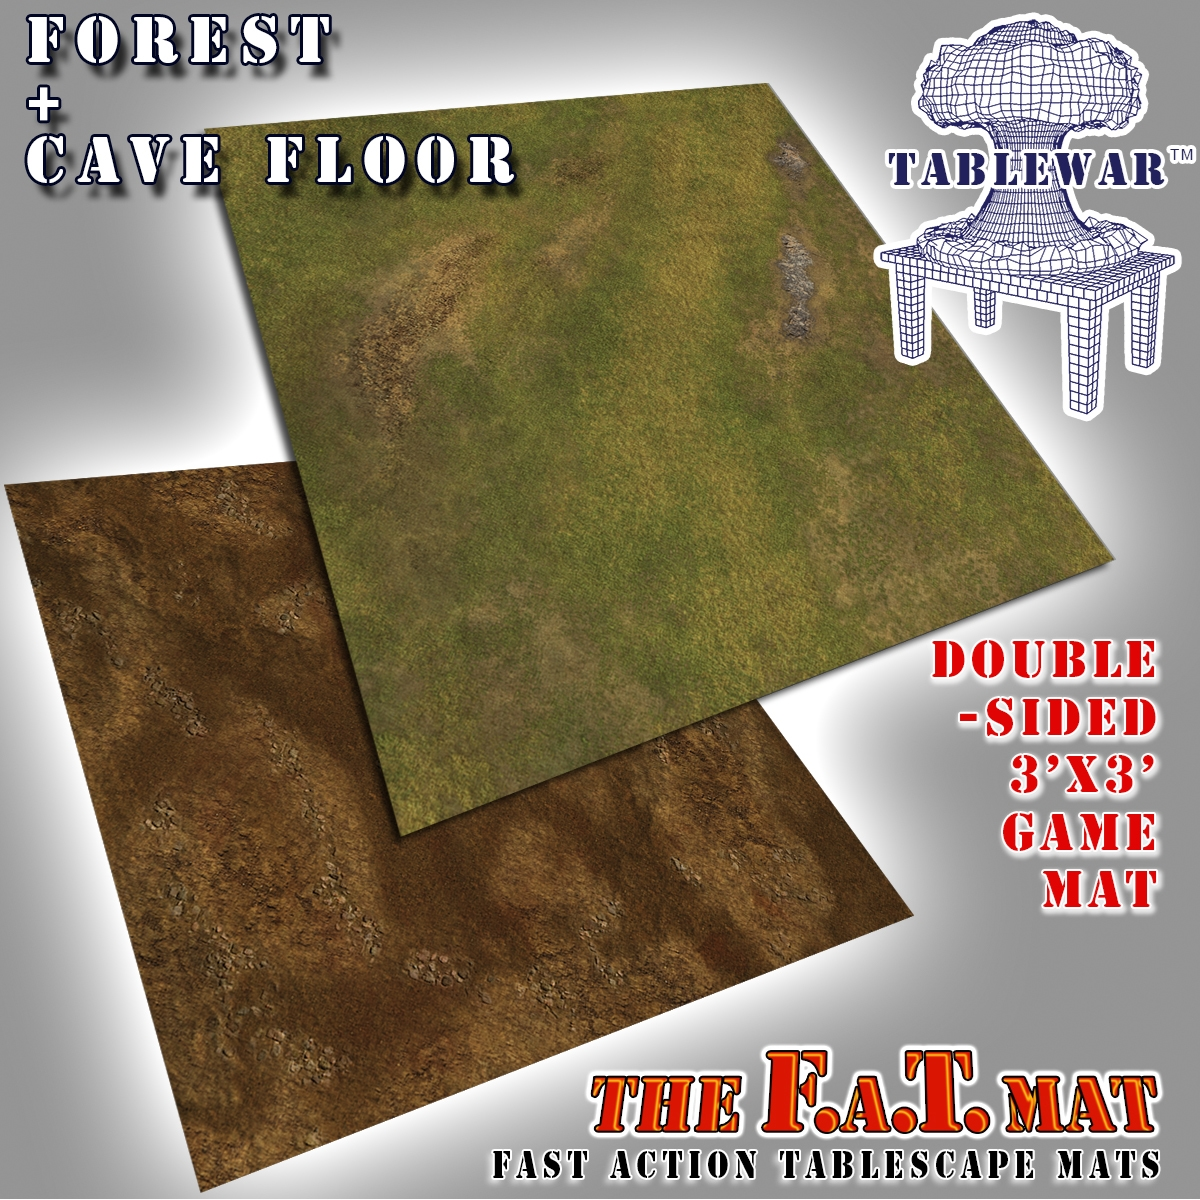 F.A.T. Mats: Forest + Cave Floor 3×3